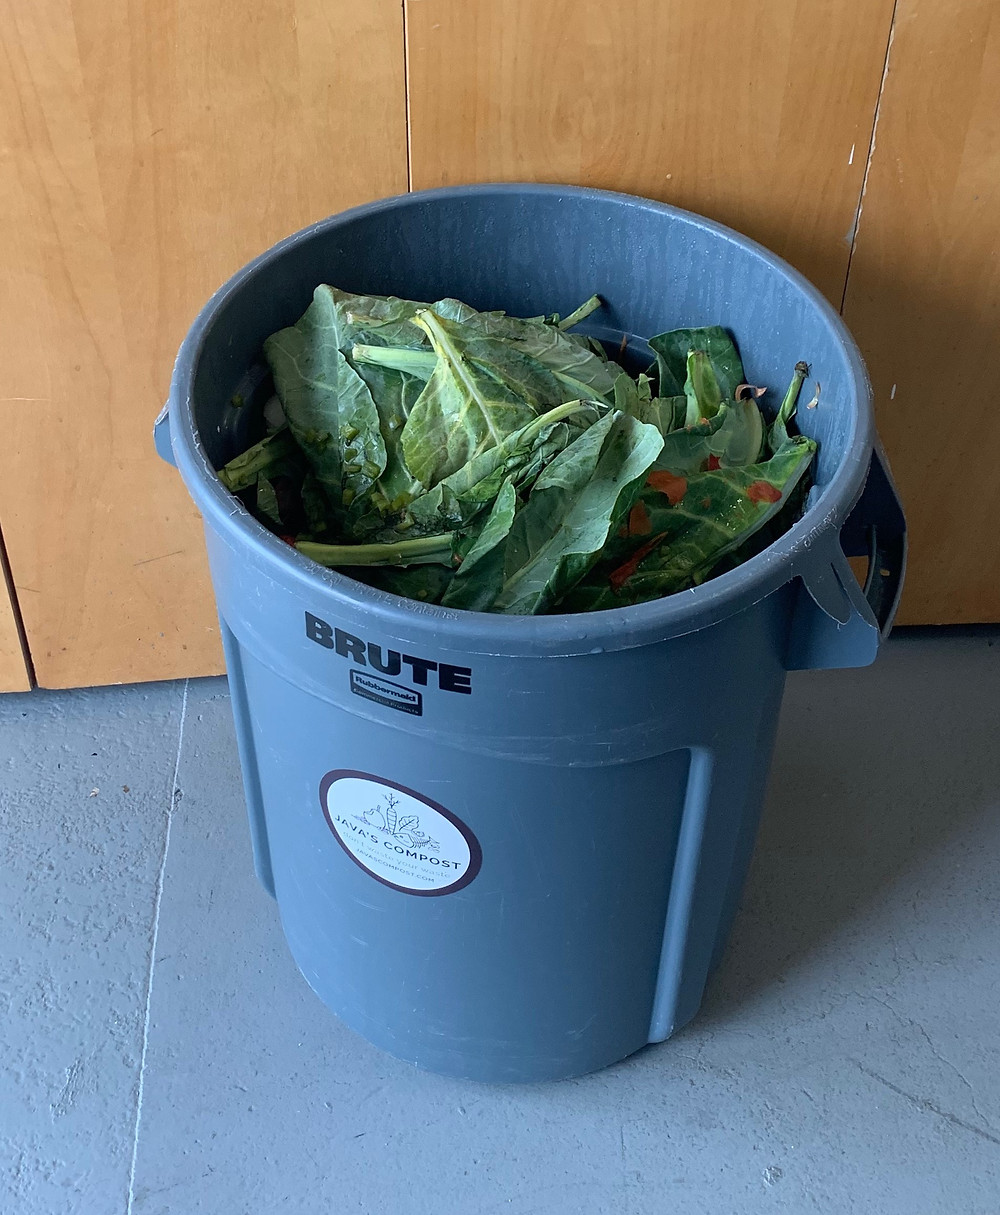 A giant garbage can full of compostable waste